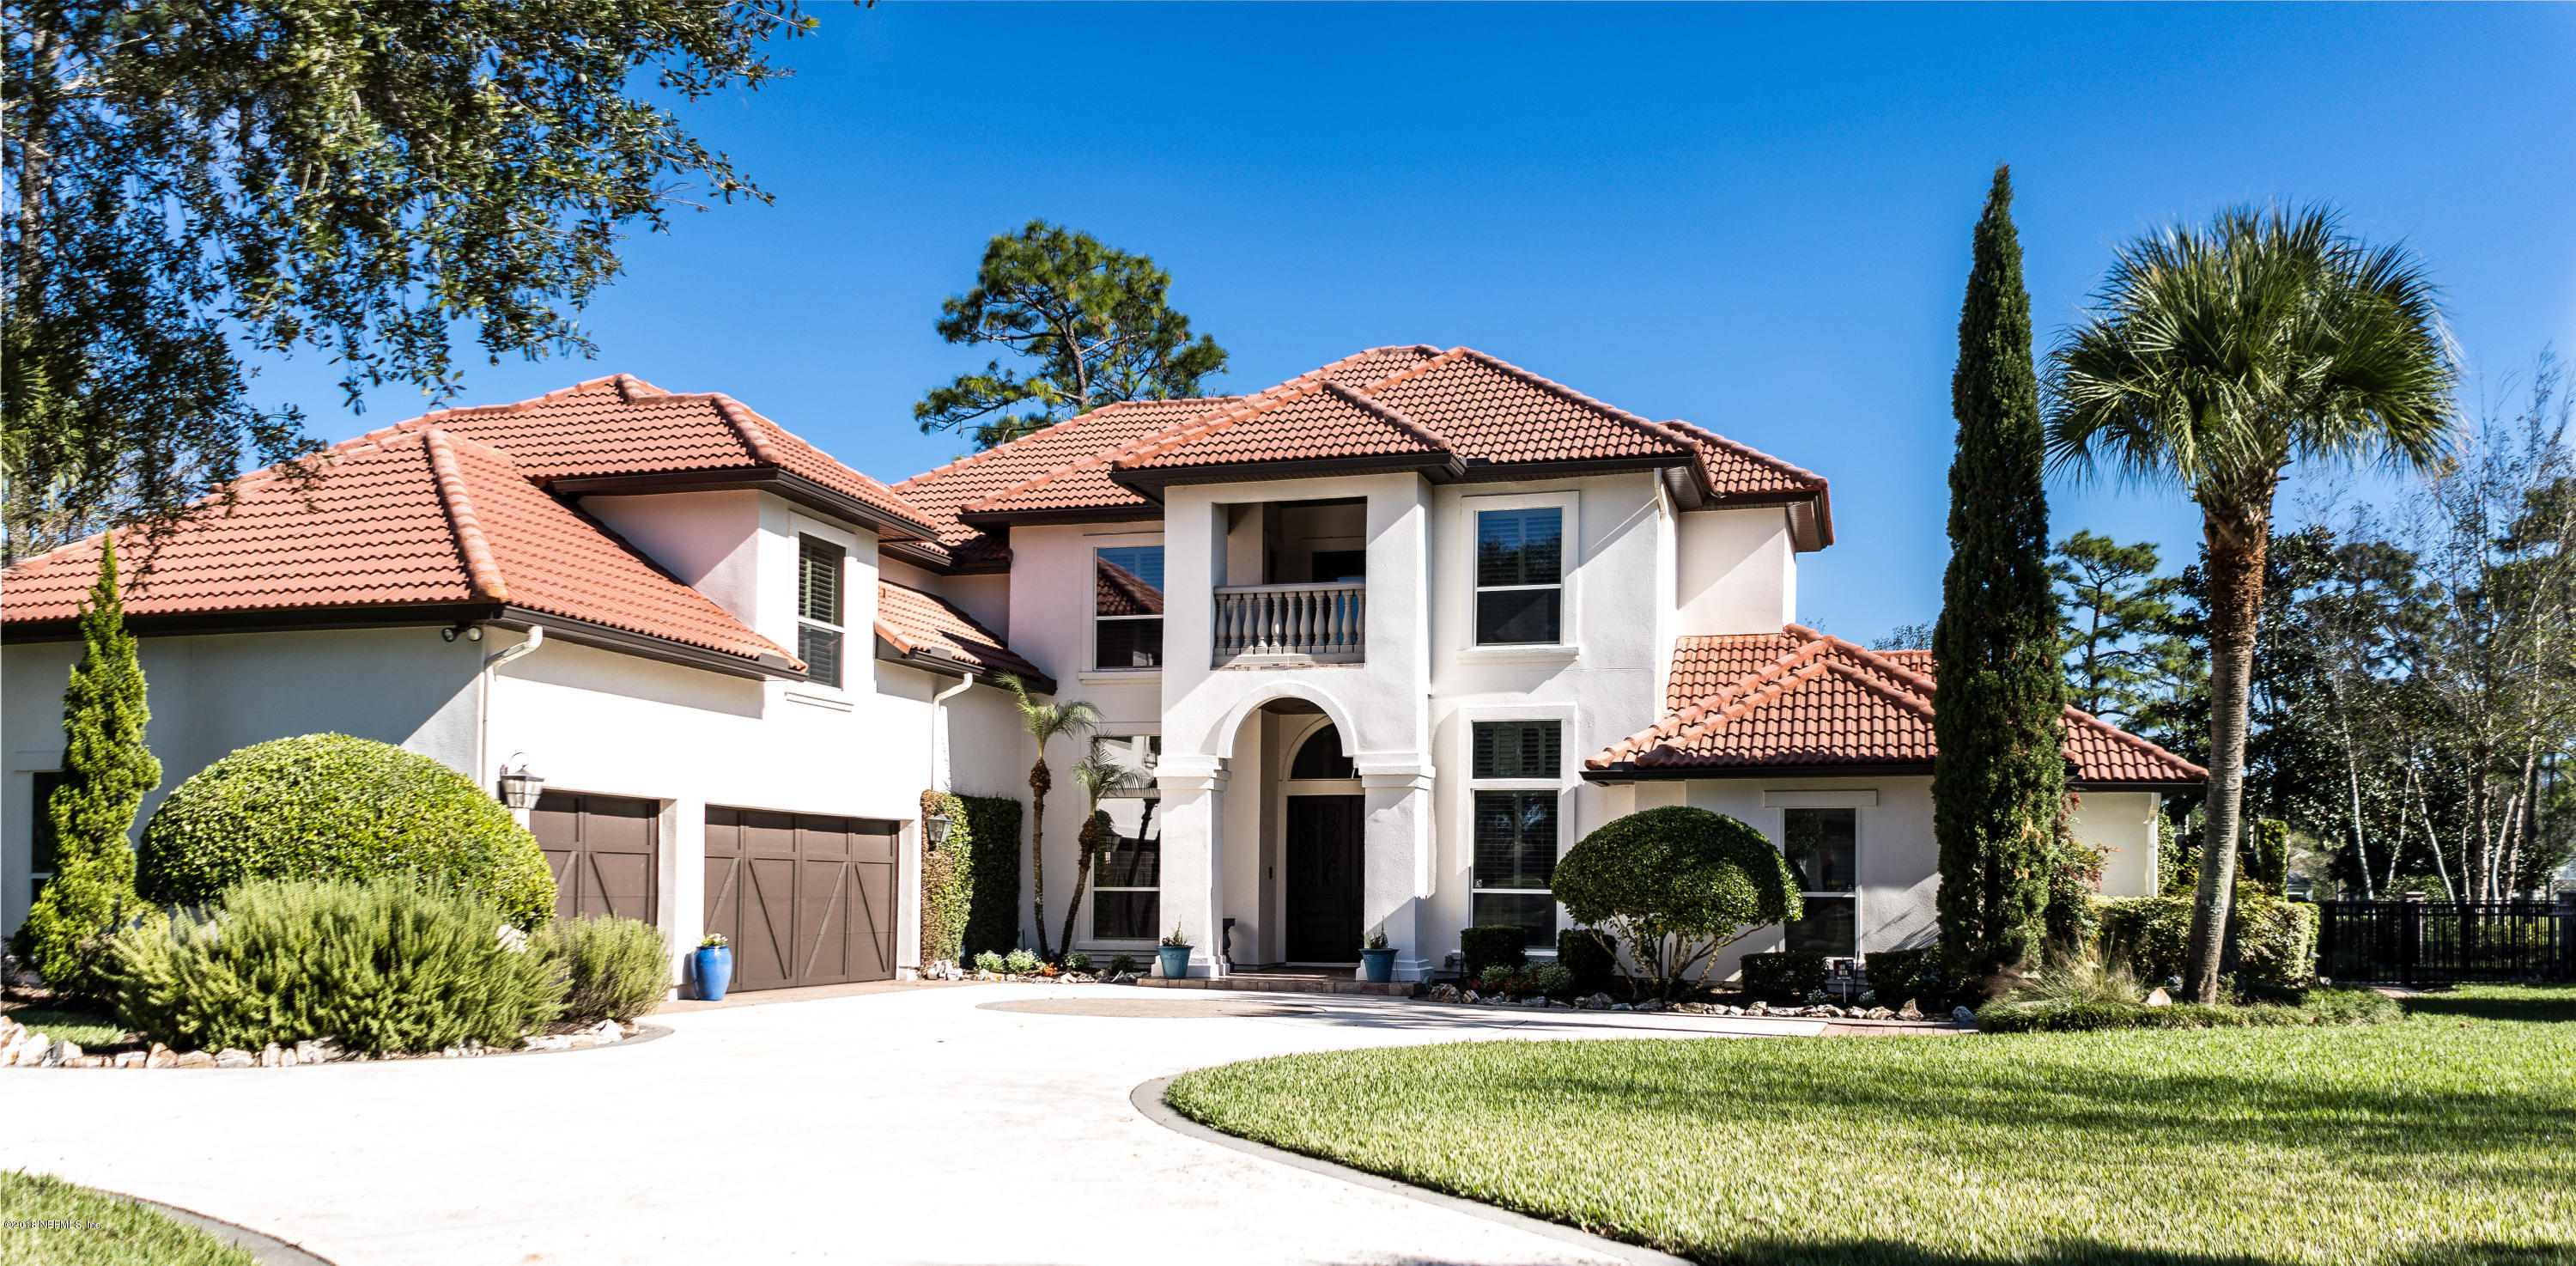 4421 CATHEYS CLUB, JACKSONVILLE, FLORIDA 32224, 6 Bedrooms Bedrooms, ,5 BathroomsBathrooms,Residential - single family,For sale,CATHEYS CLUB,968192